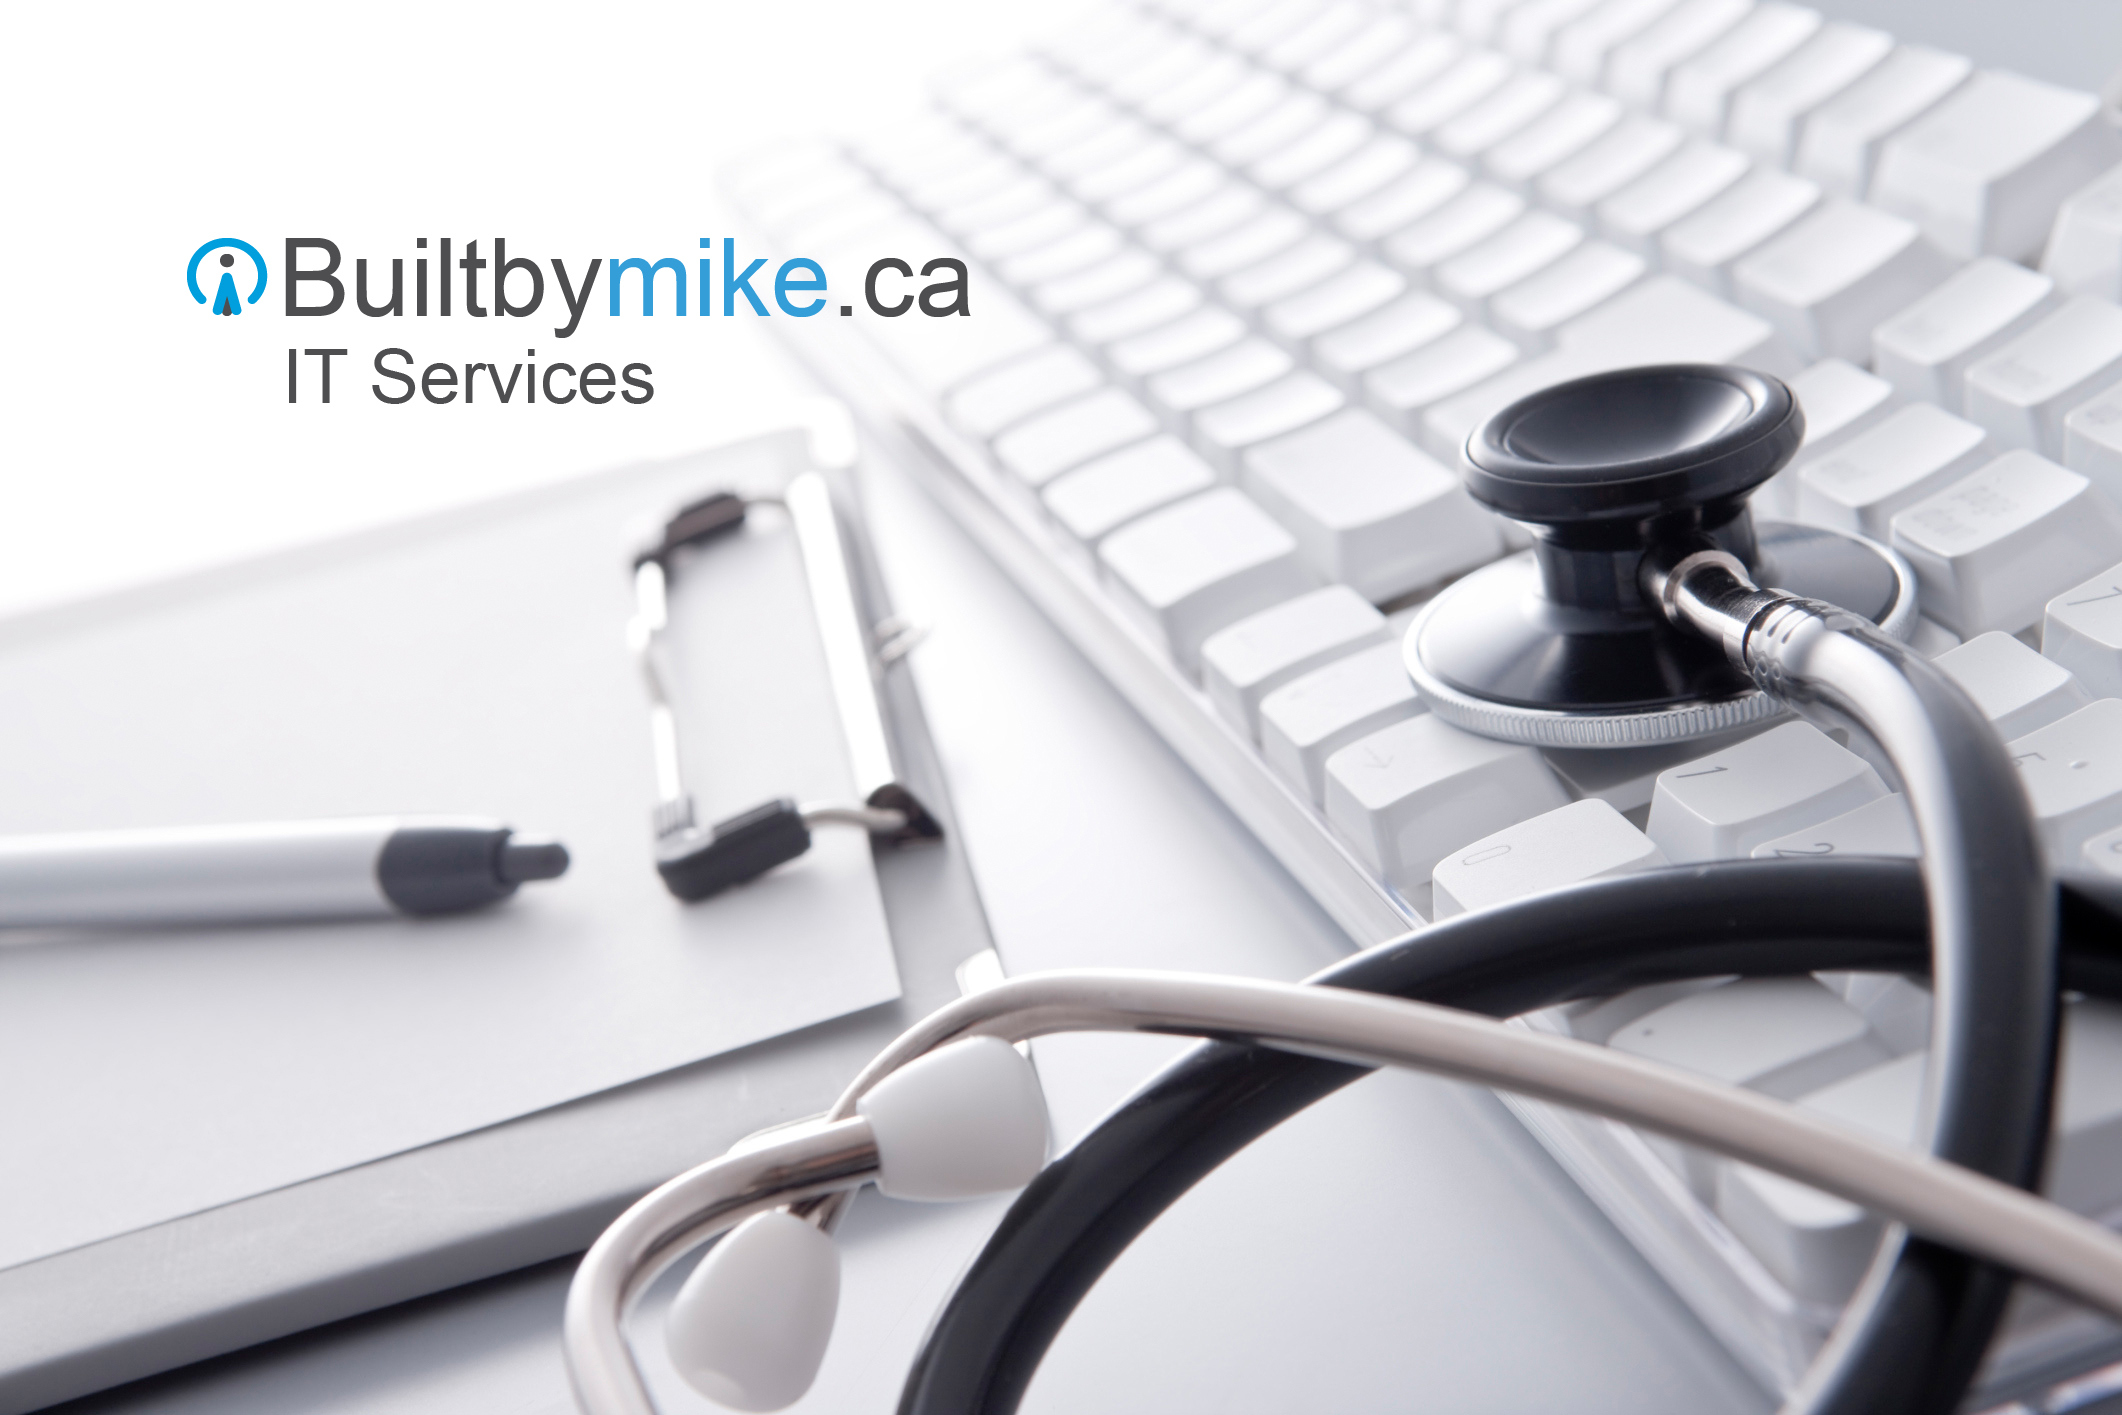 Builtbymike.ca IT Service